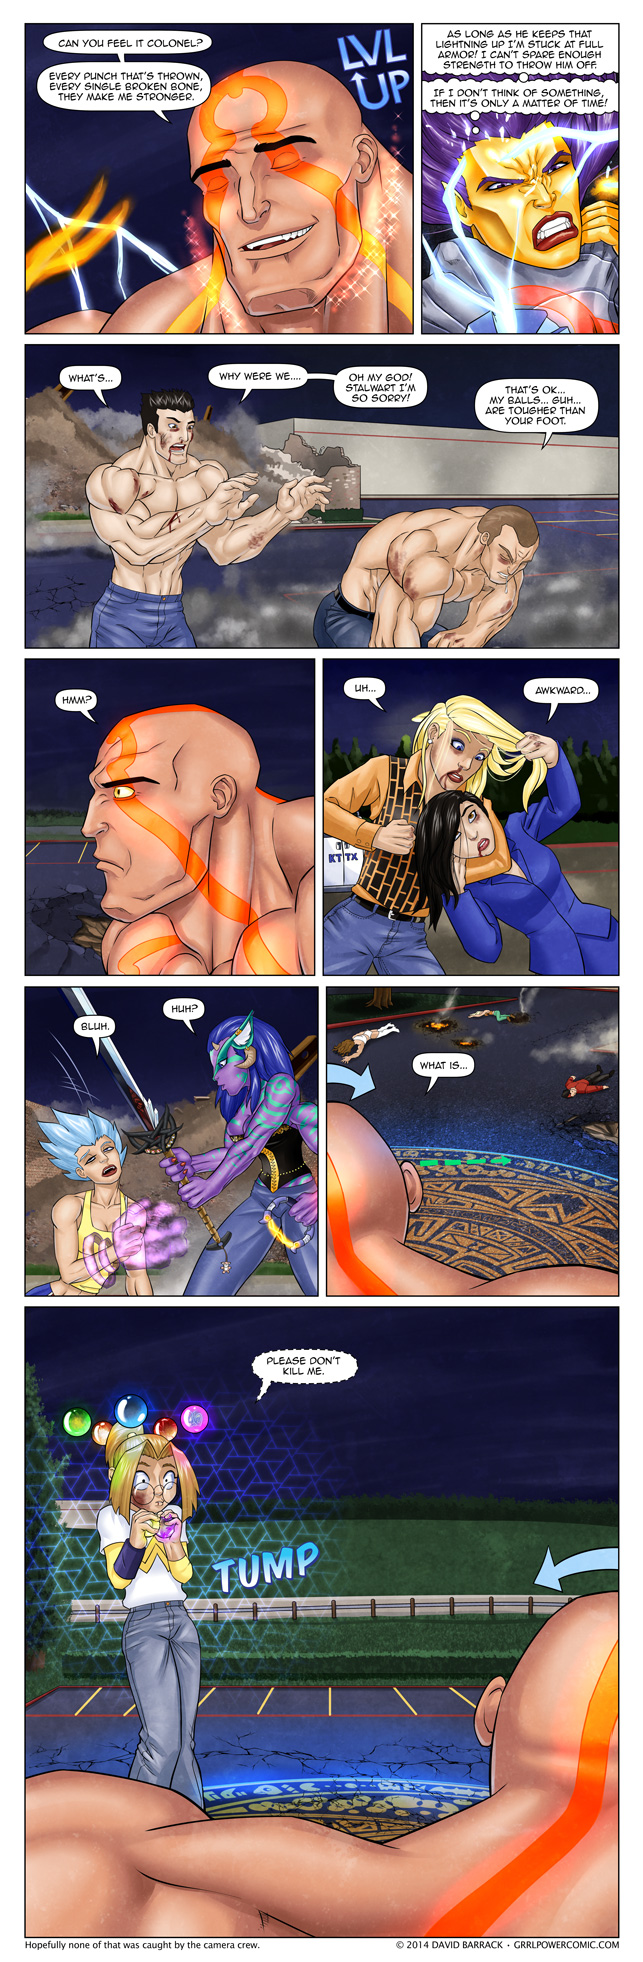 Grrl Power #279 – High risk reversal